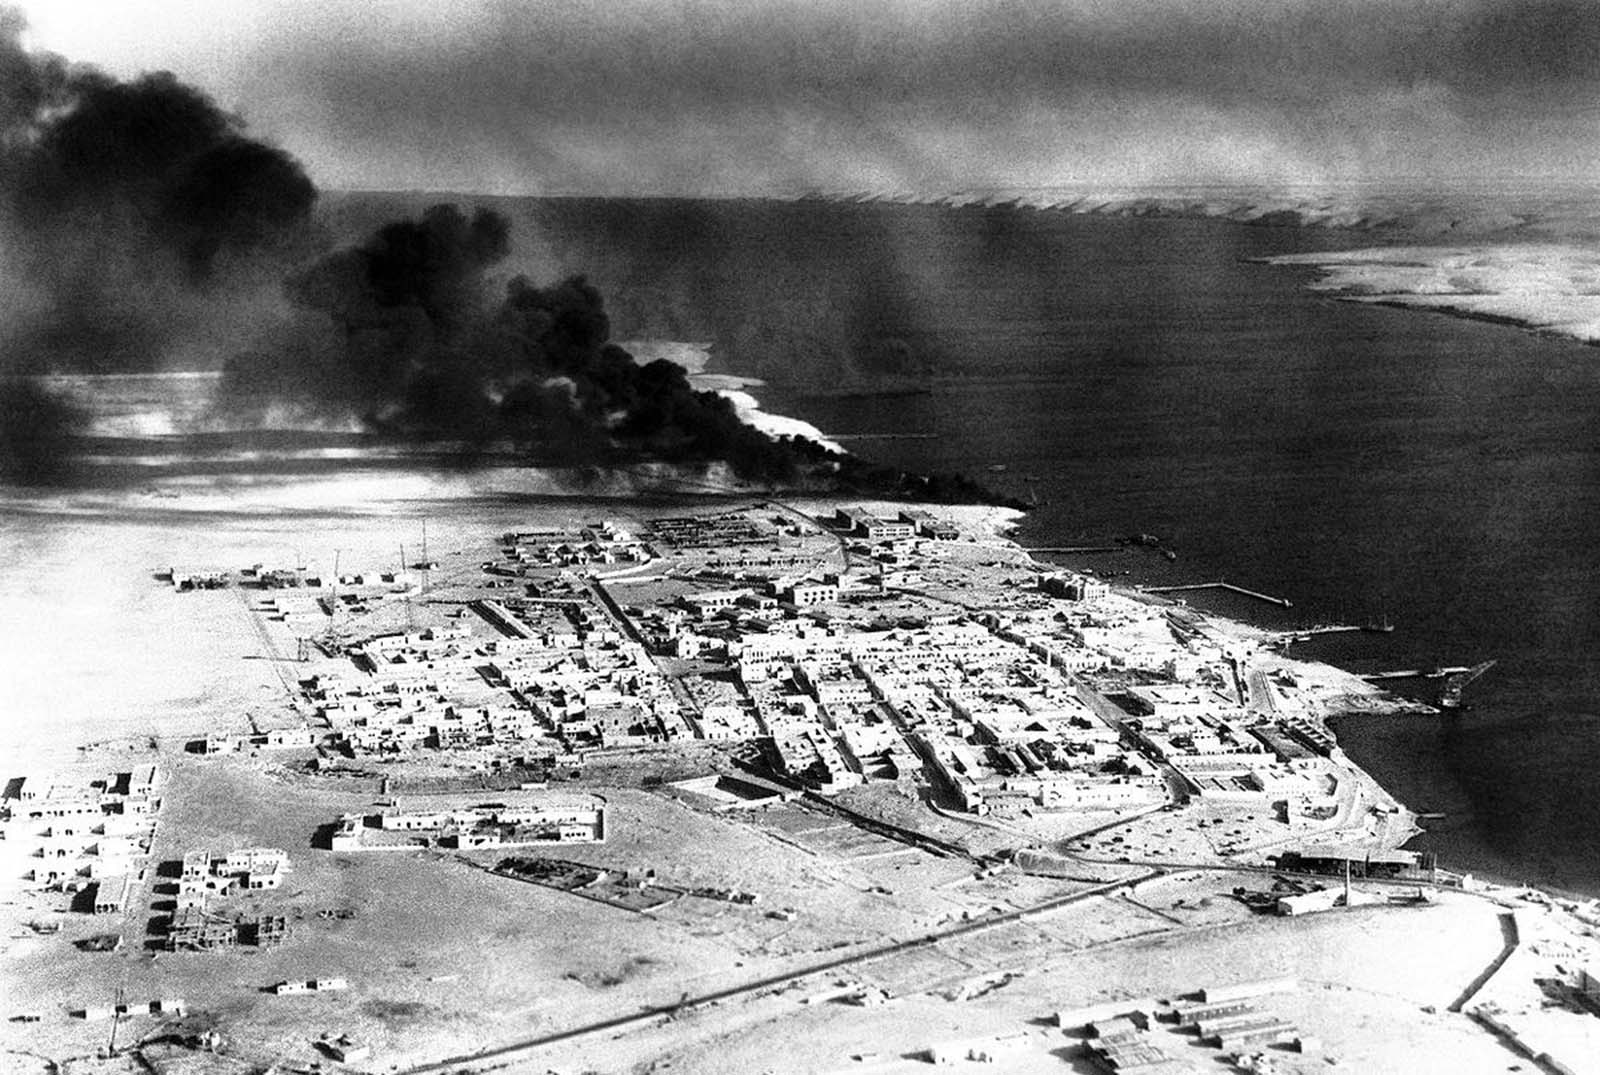 An aerial view of Tobruk, Libya, showing petrol dumps burning after attacks by Allied forces in 1941.